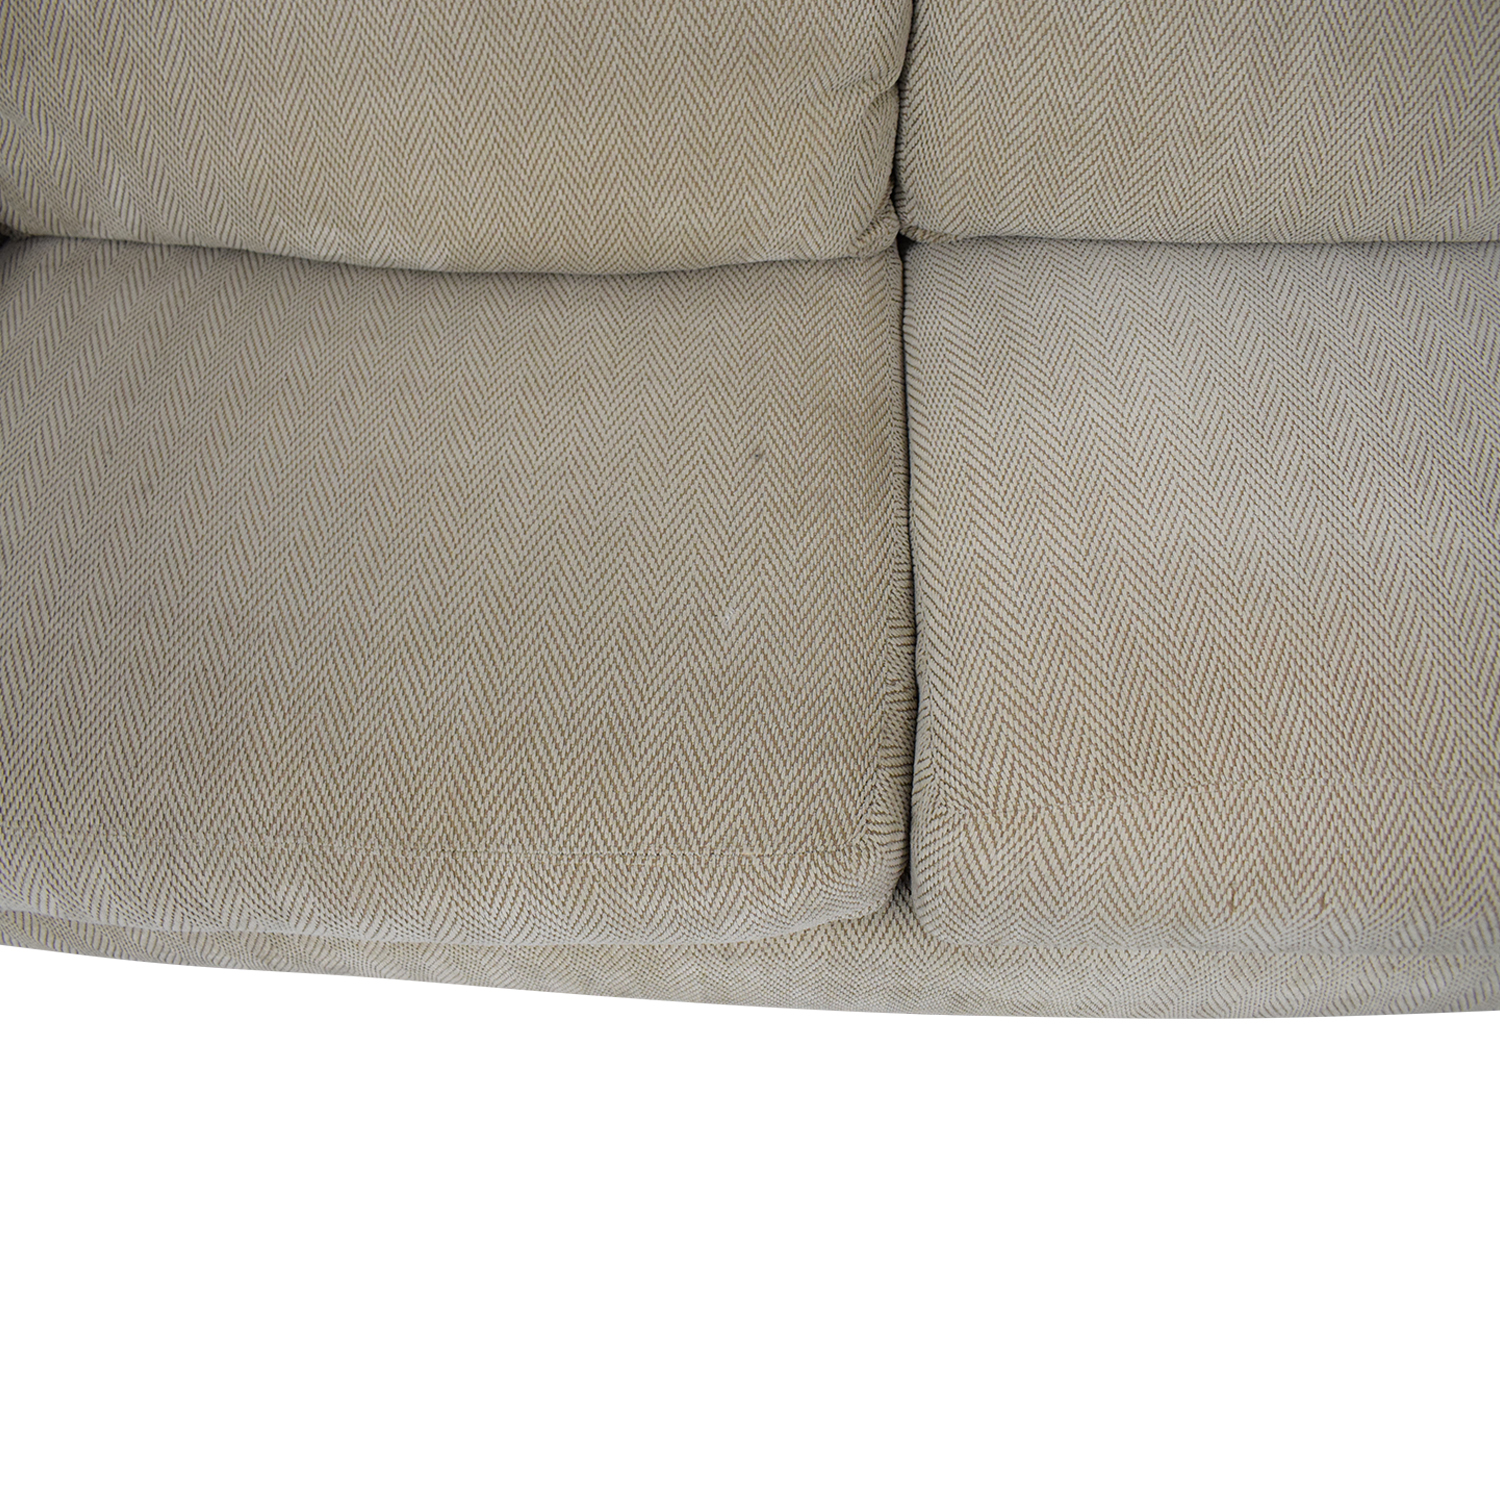 Rowe Furniture Rowe Furniture Dakota Two Cushion Sofa coupon